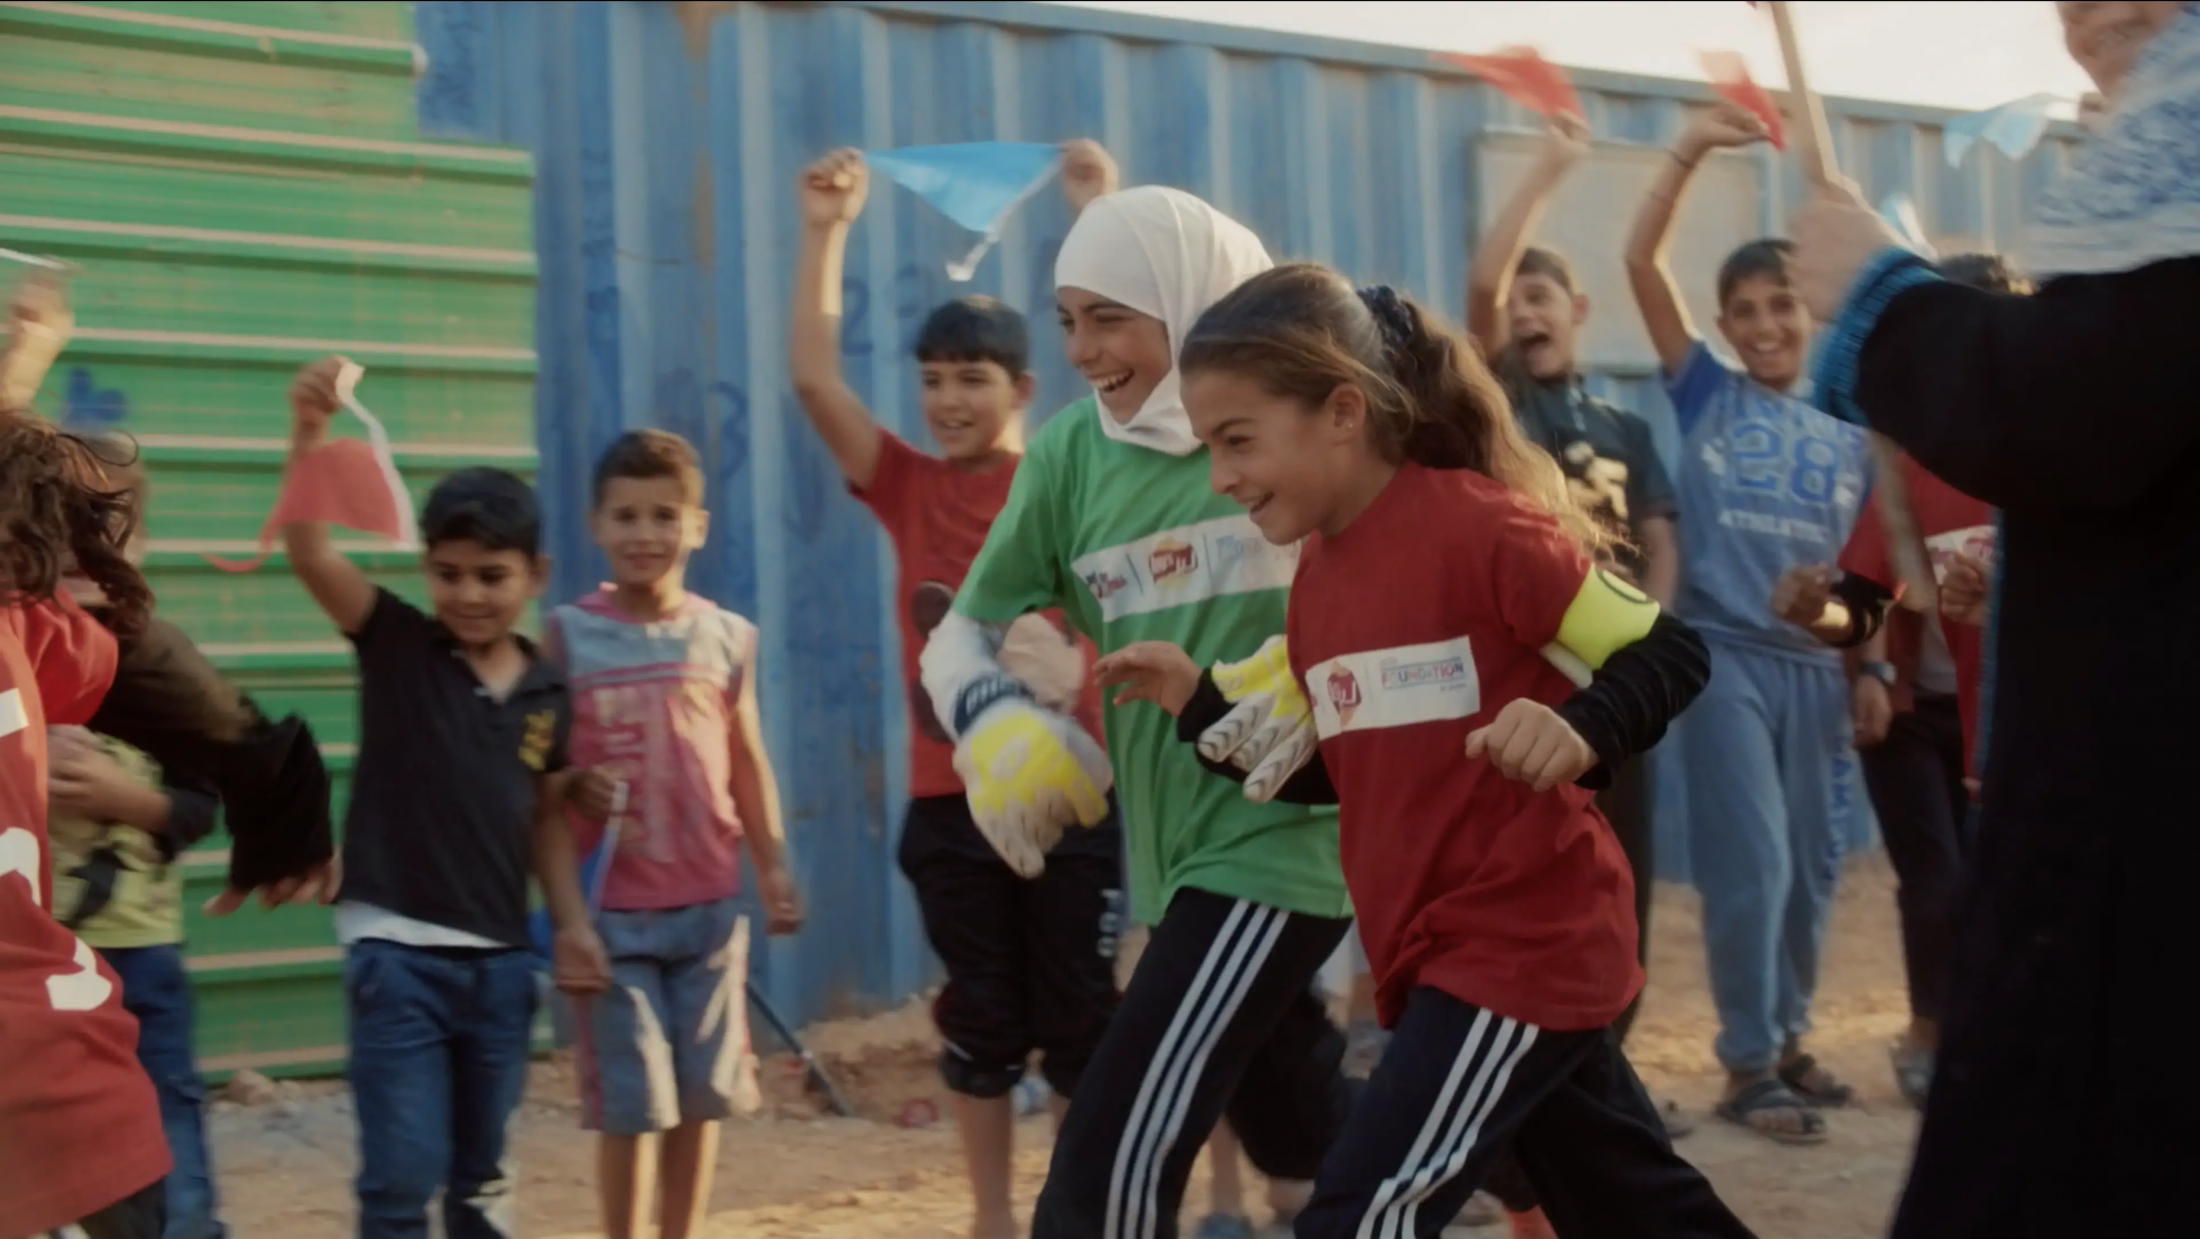 Thumbnail for Hope Football Pitch for Women